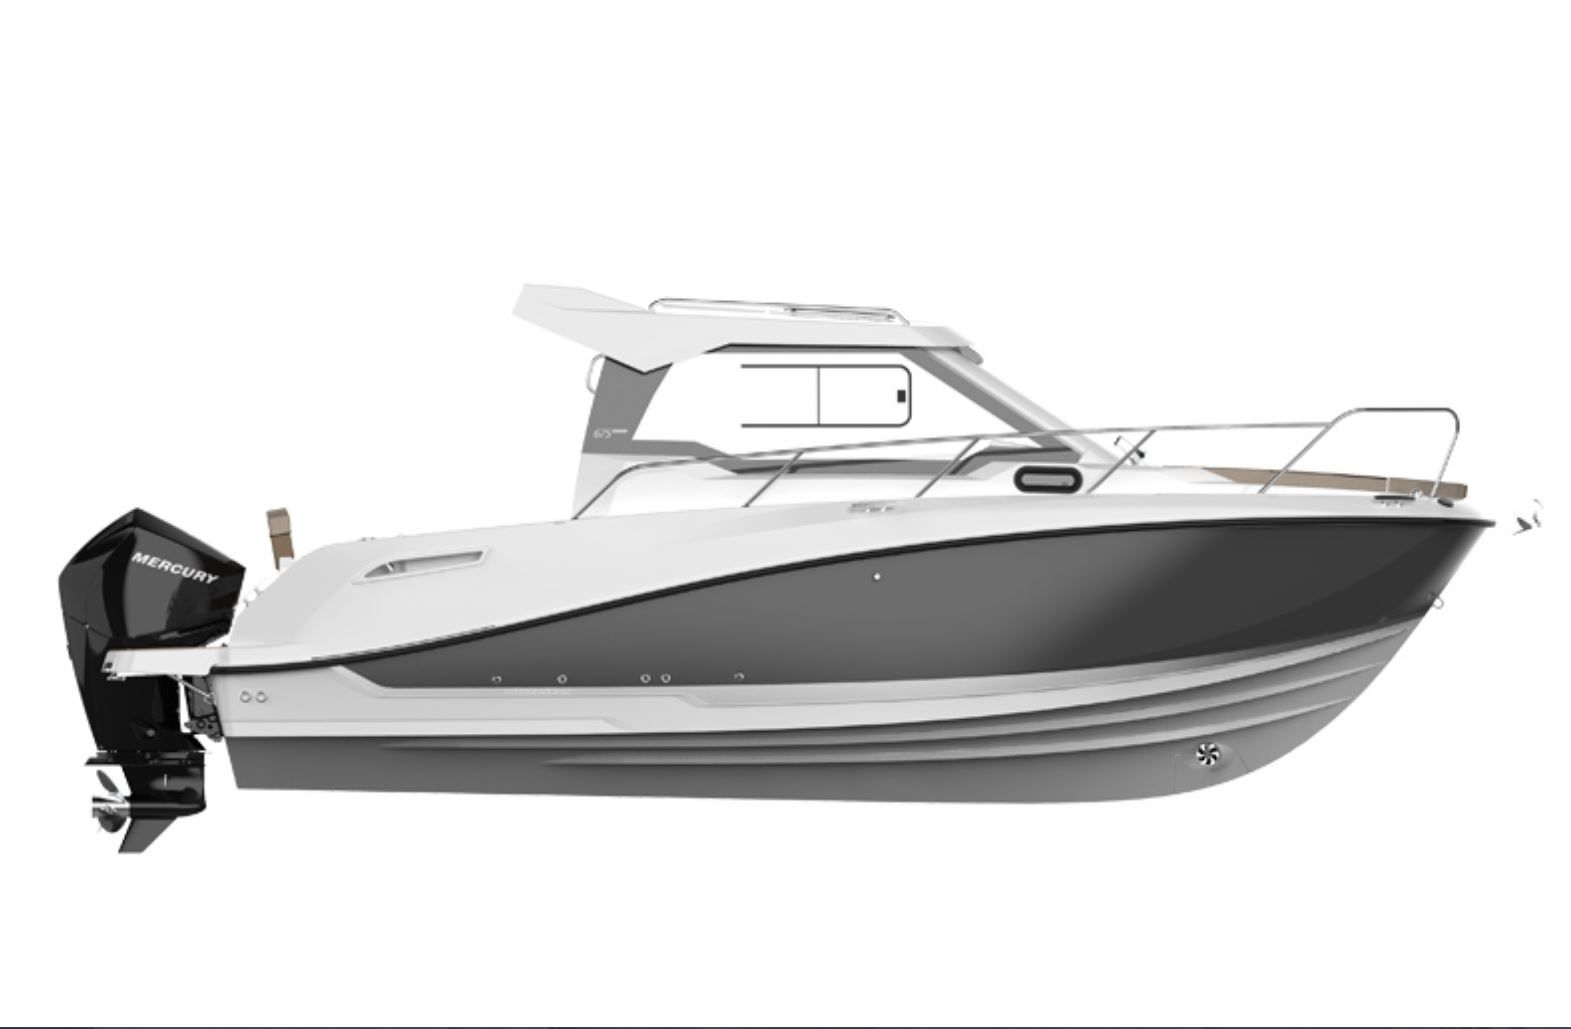 Boating - Quicksilver announces the arrival of the Quicksilver 675 Weekend